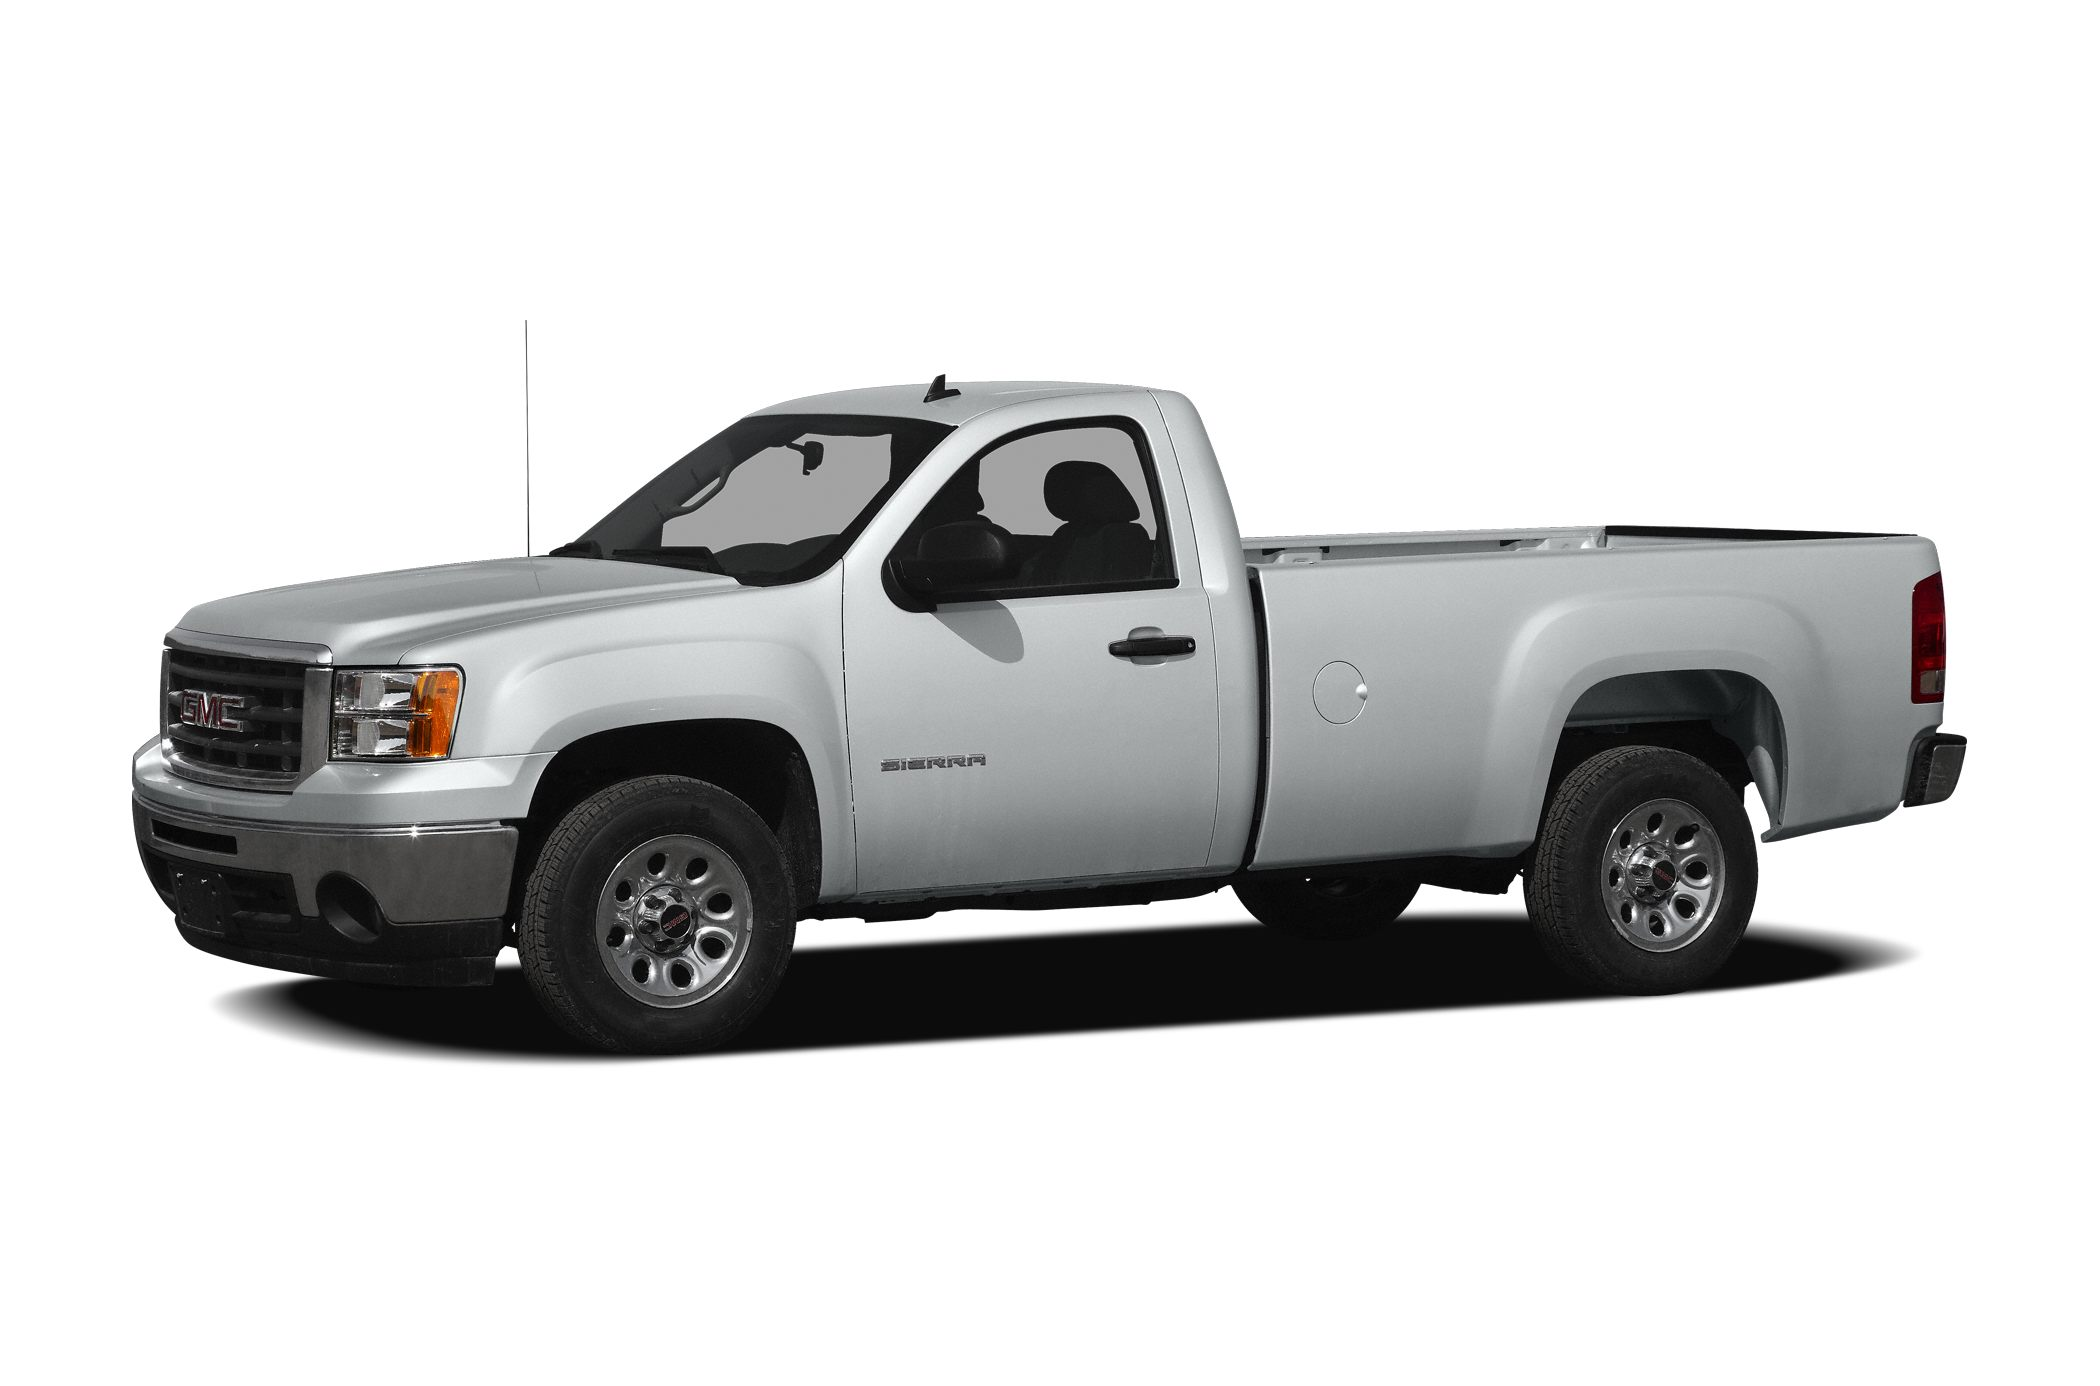 2011 GMC Sierra 1500 SLE Crew Cab Pickup for sale in Jackson for $28,995 with 54,987 miles.